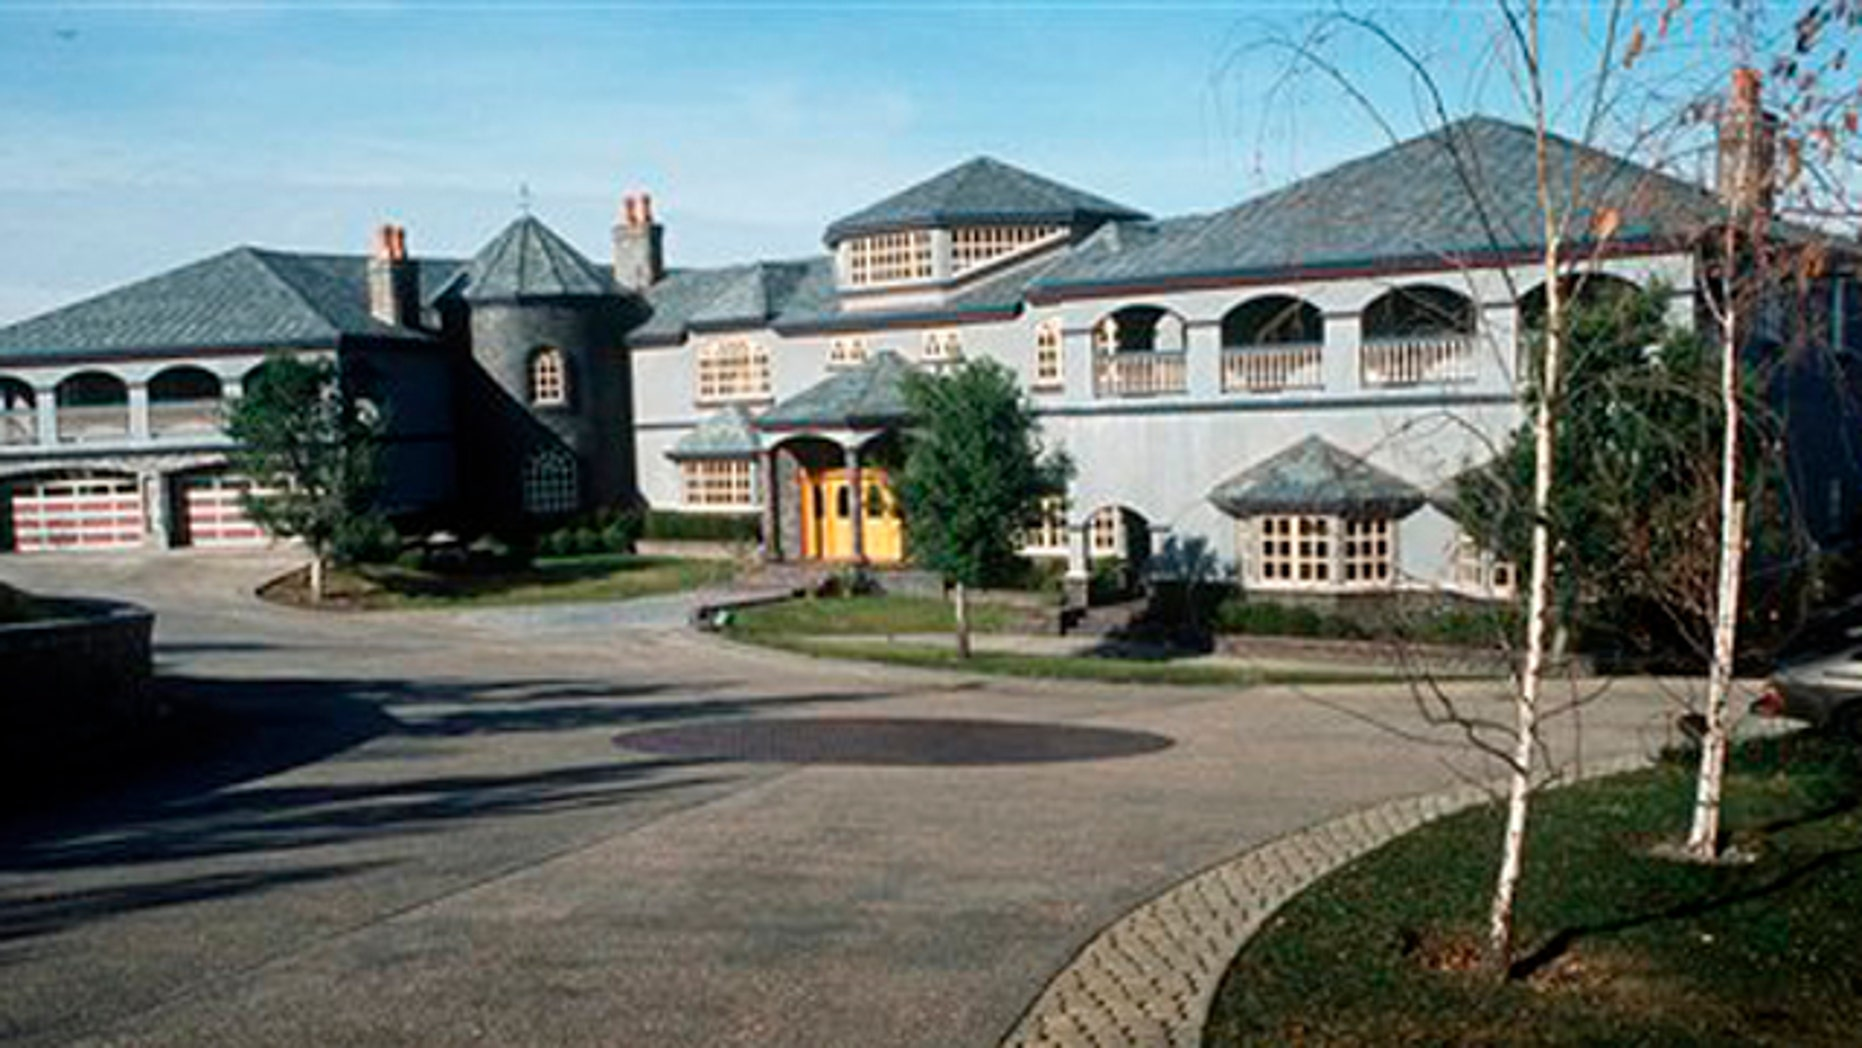 Dec. 16, 1993: This file photo is an outside view of the mansion in Novato, Calif., bought by former Ukranian Prime Minister Pavel Lazarenko for $6.7 million.